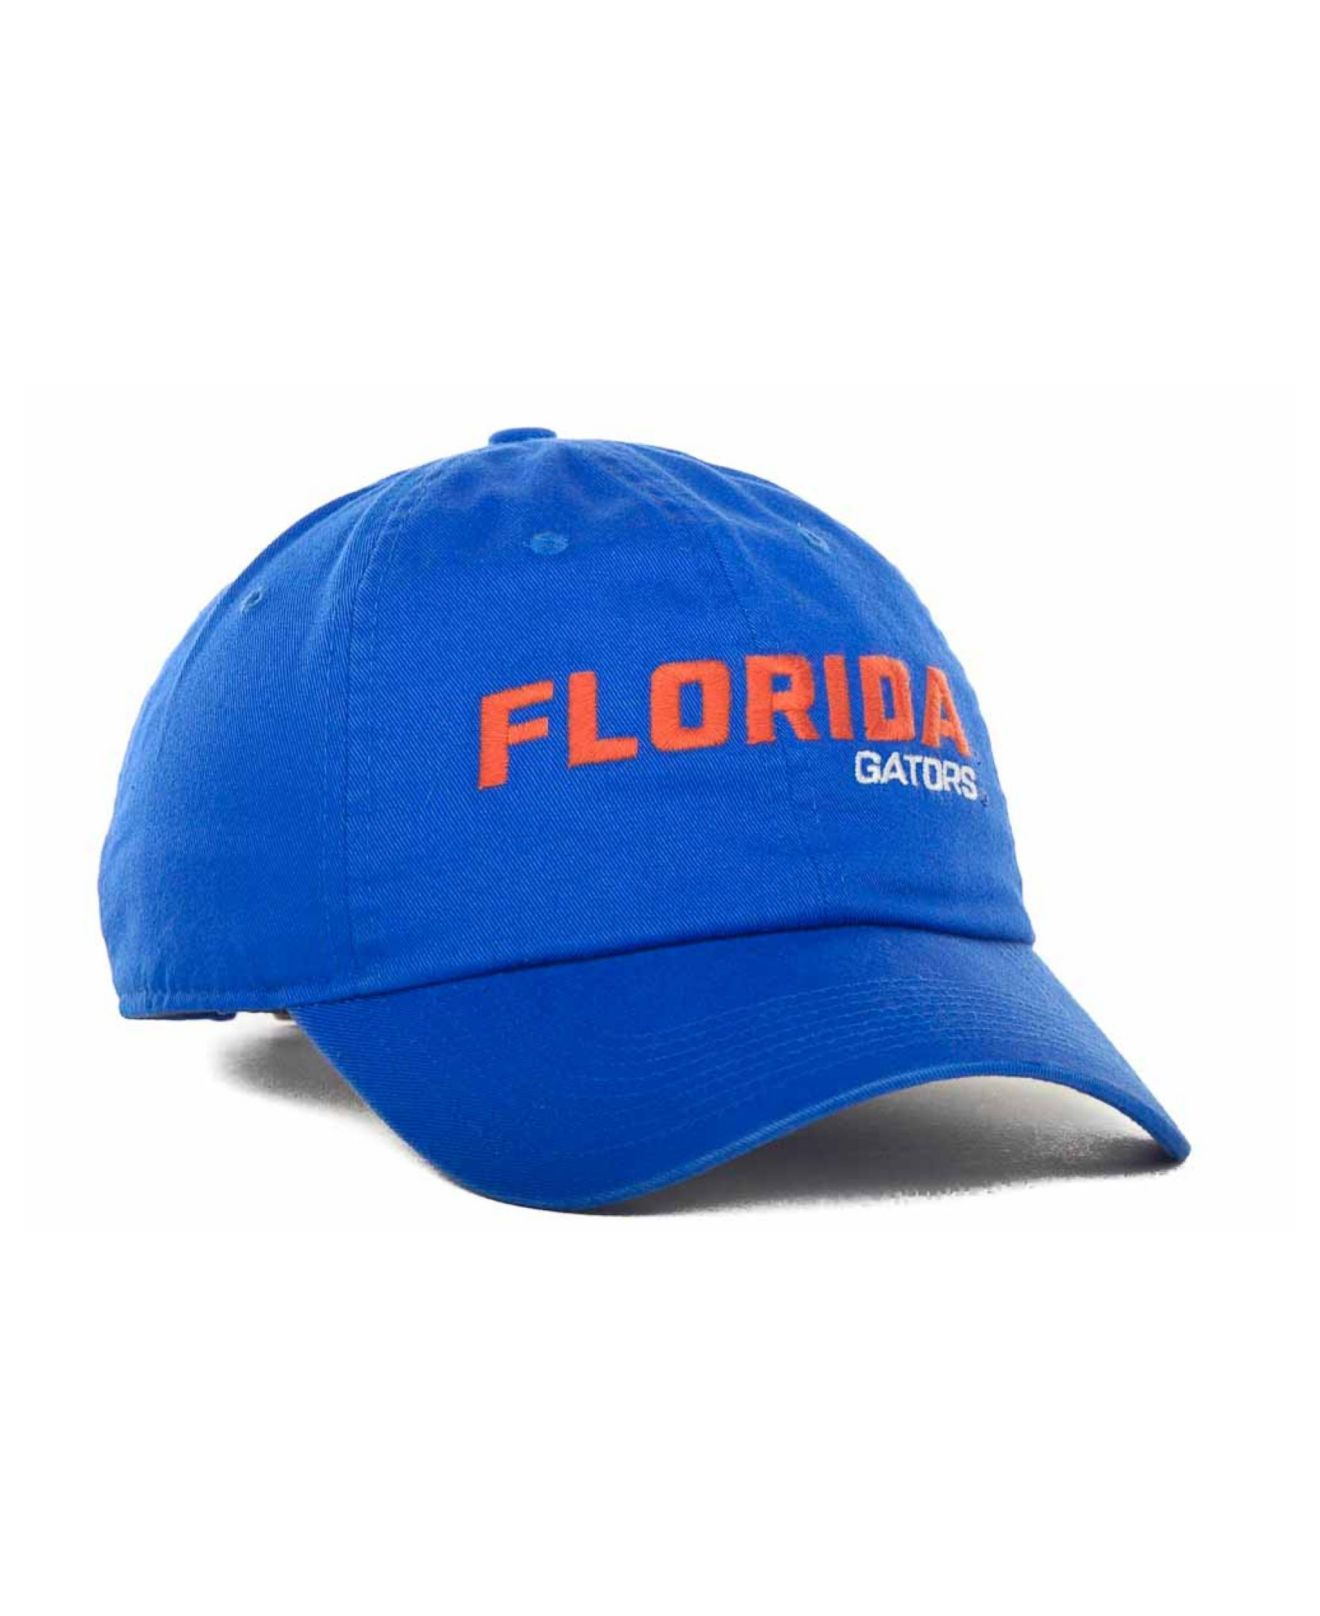 87d4d014384 Lyst - Nike Florida Gators Heritage 86 Campus Cap in Blue for Men